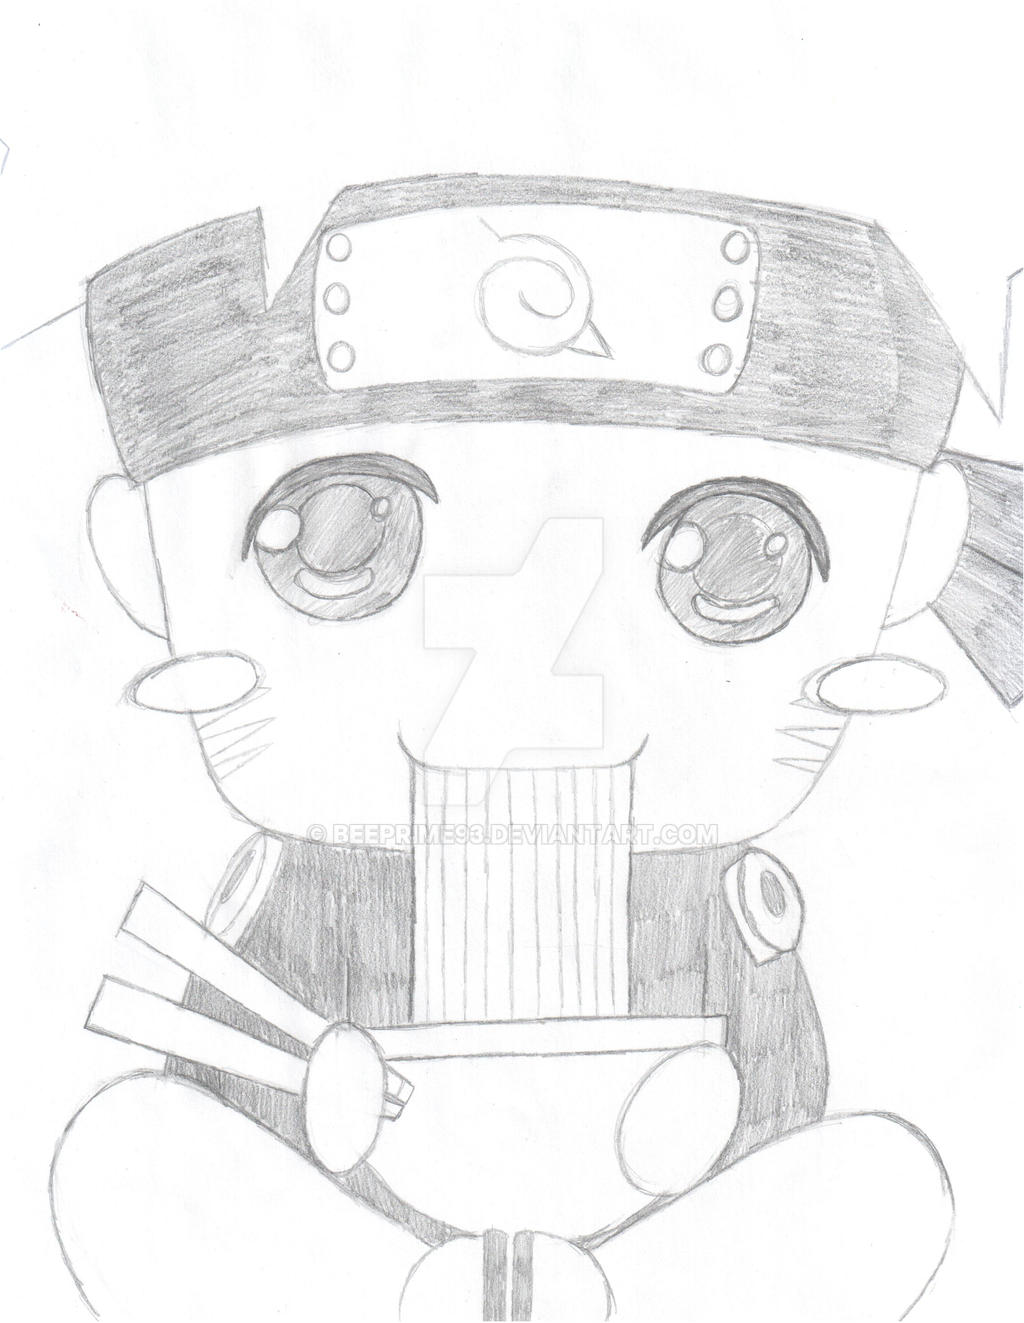 Chibi naruto pencil by beeprime93 on deviantart